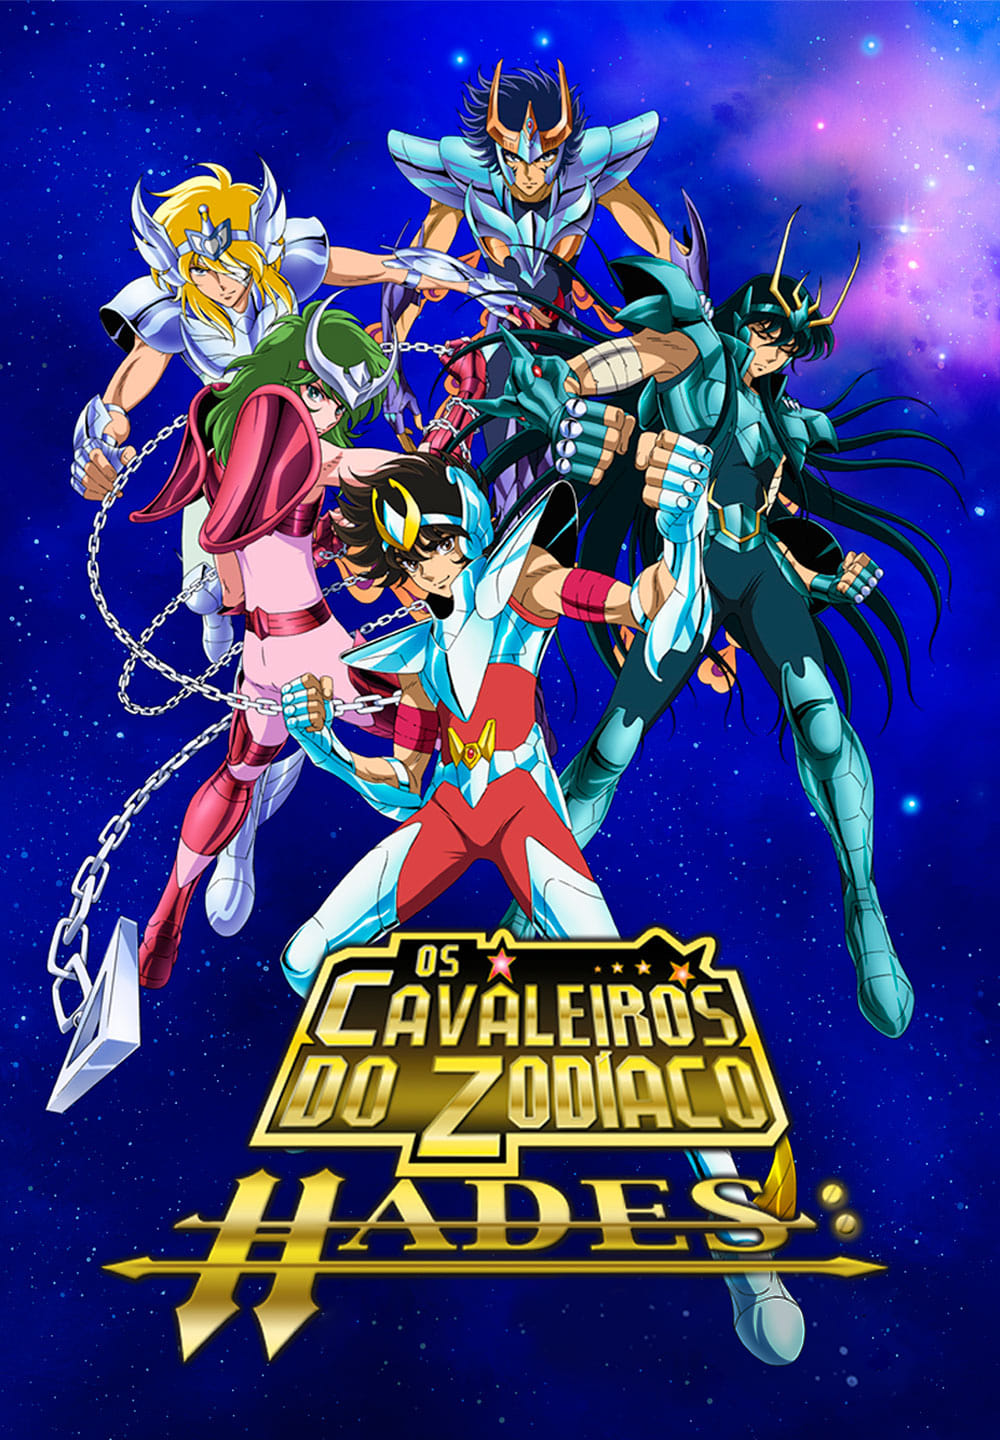 Saint Seiya: The Hades Chapter (2002)